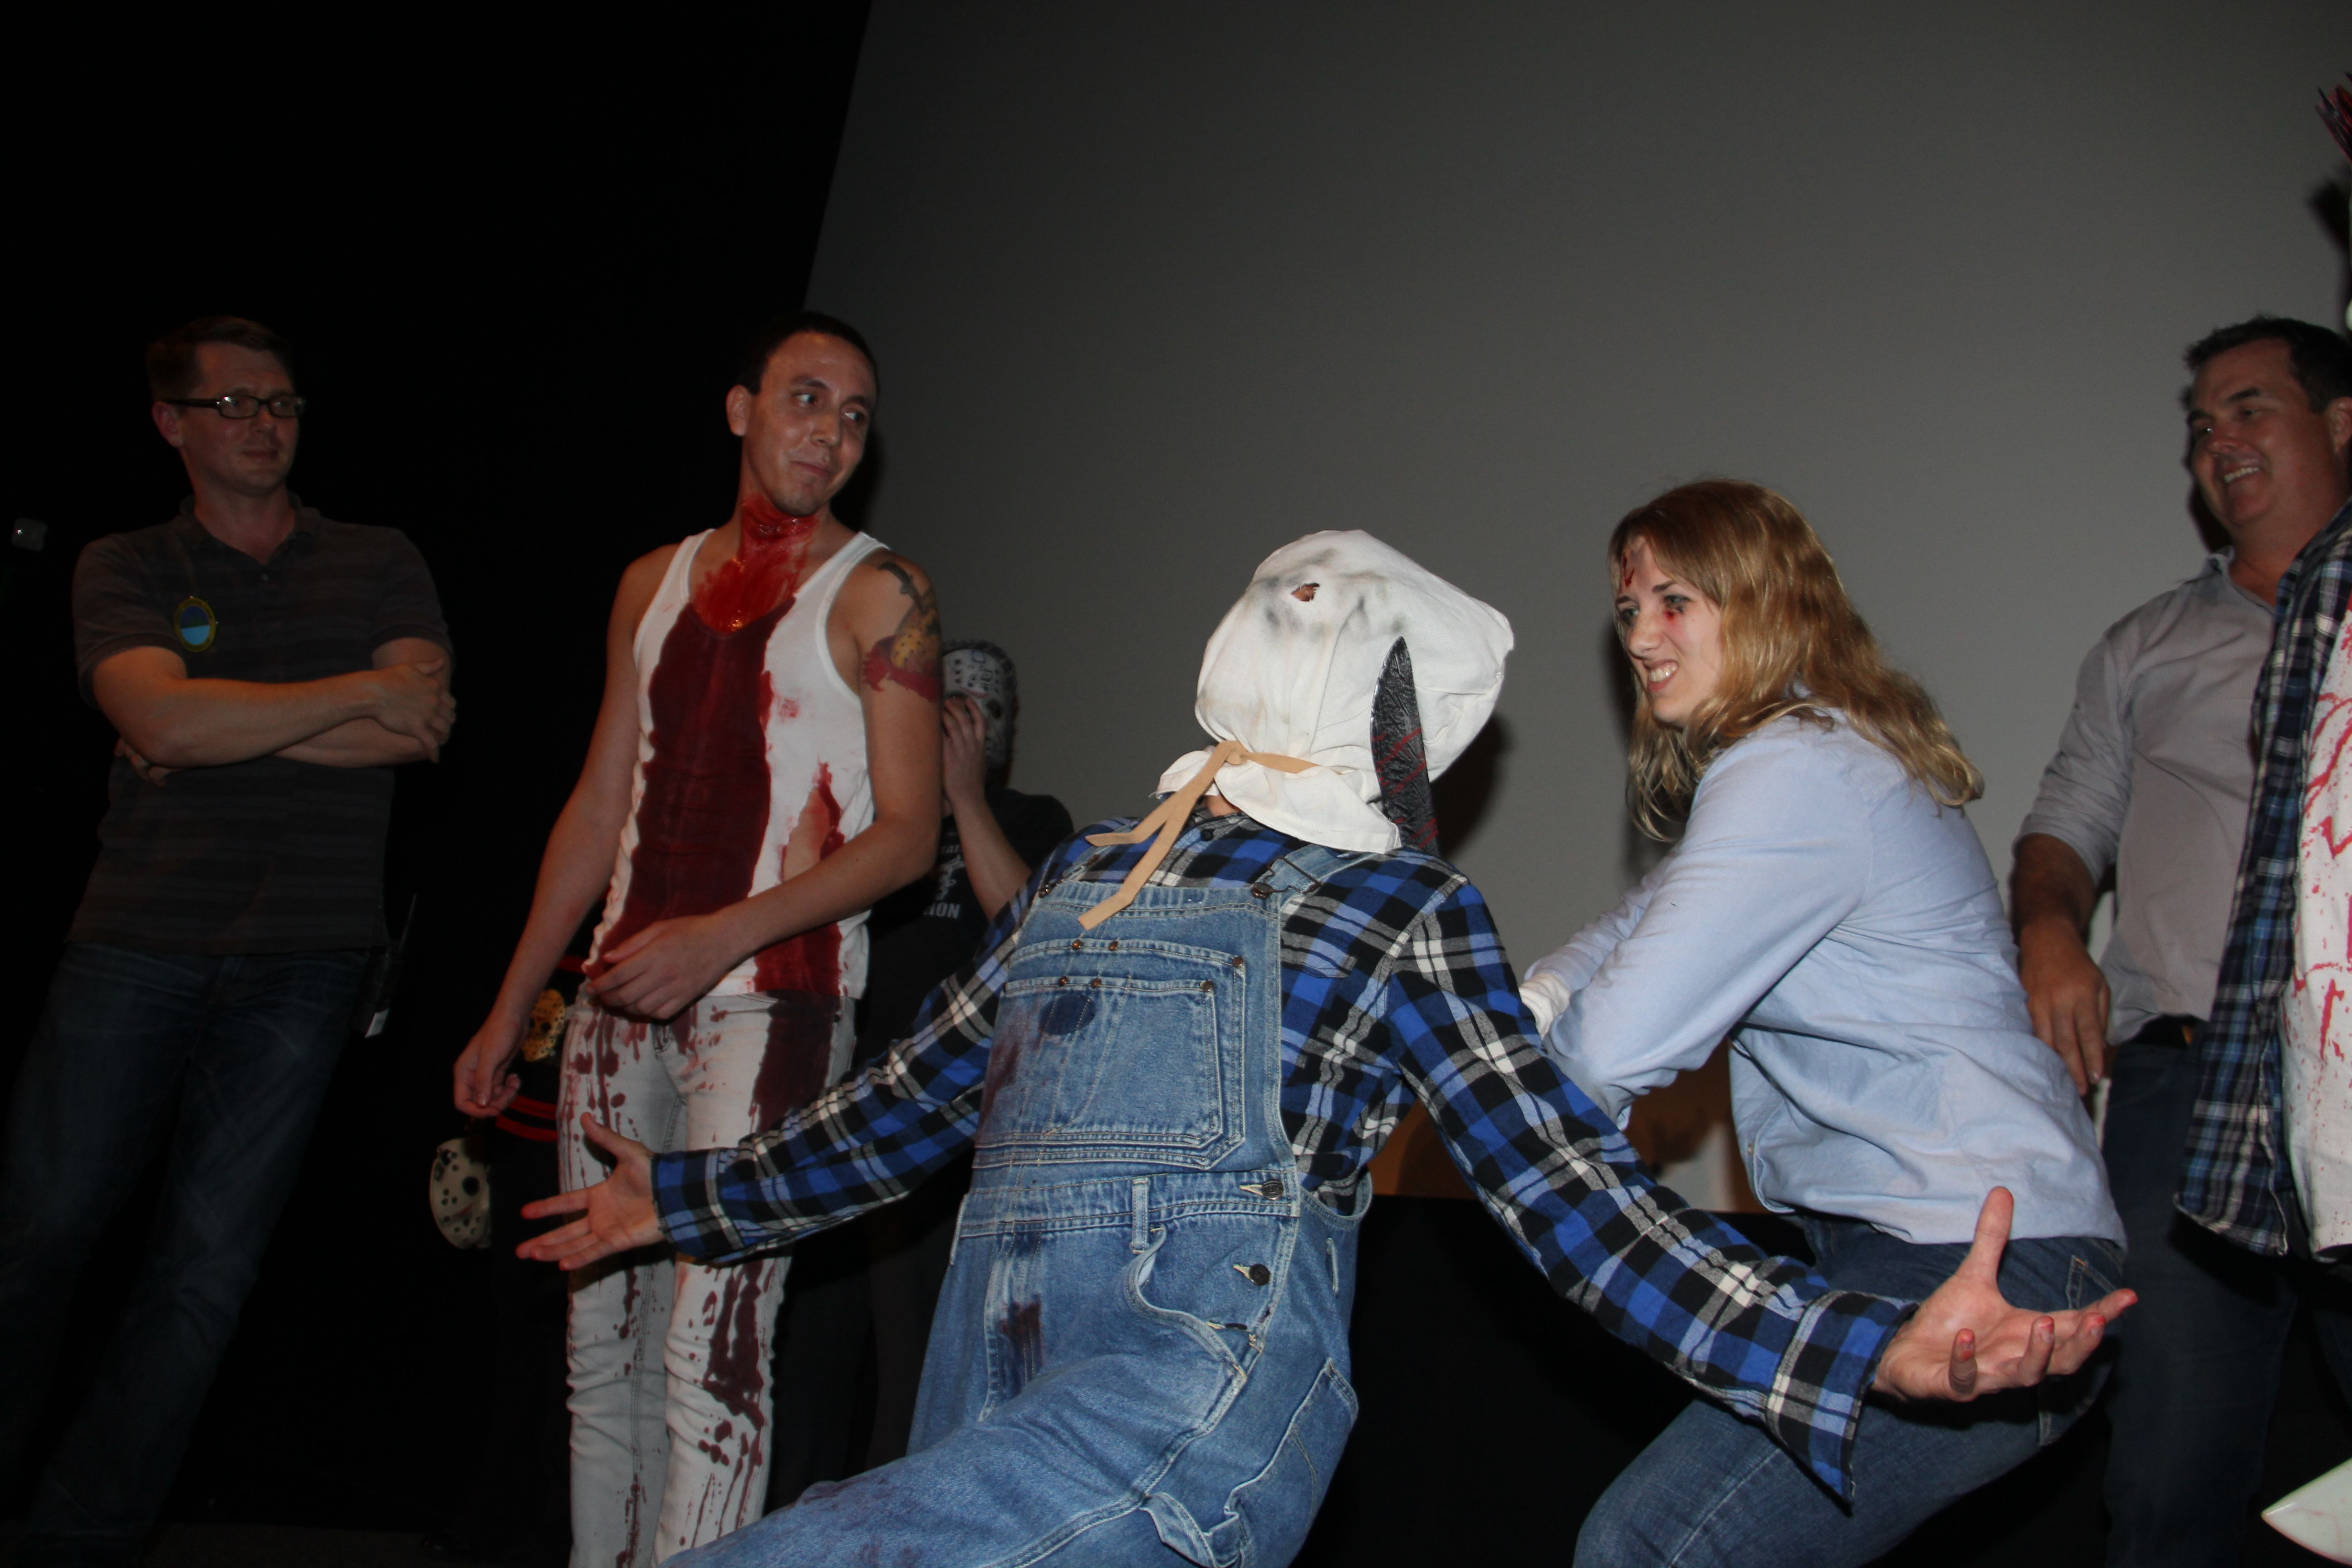 """A tribute to the original FRIDAY THE 13th, PART 2: my """"Ginny Fields"""" (my wife, Jennifer) sticks it to my """"Sackhead Jason Voorhees"""" during the 2nd Round of the Costume Contest!  PHOTO COURTESY LEE CHRISTIAN"""